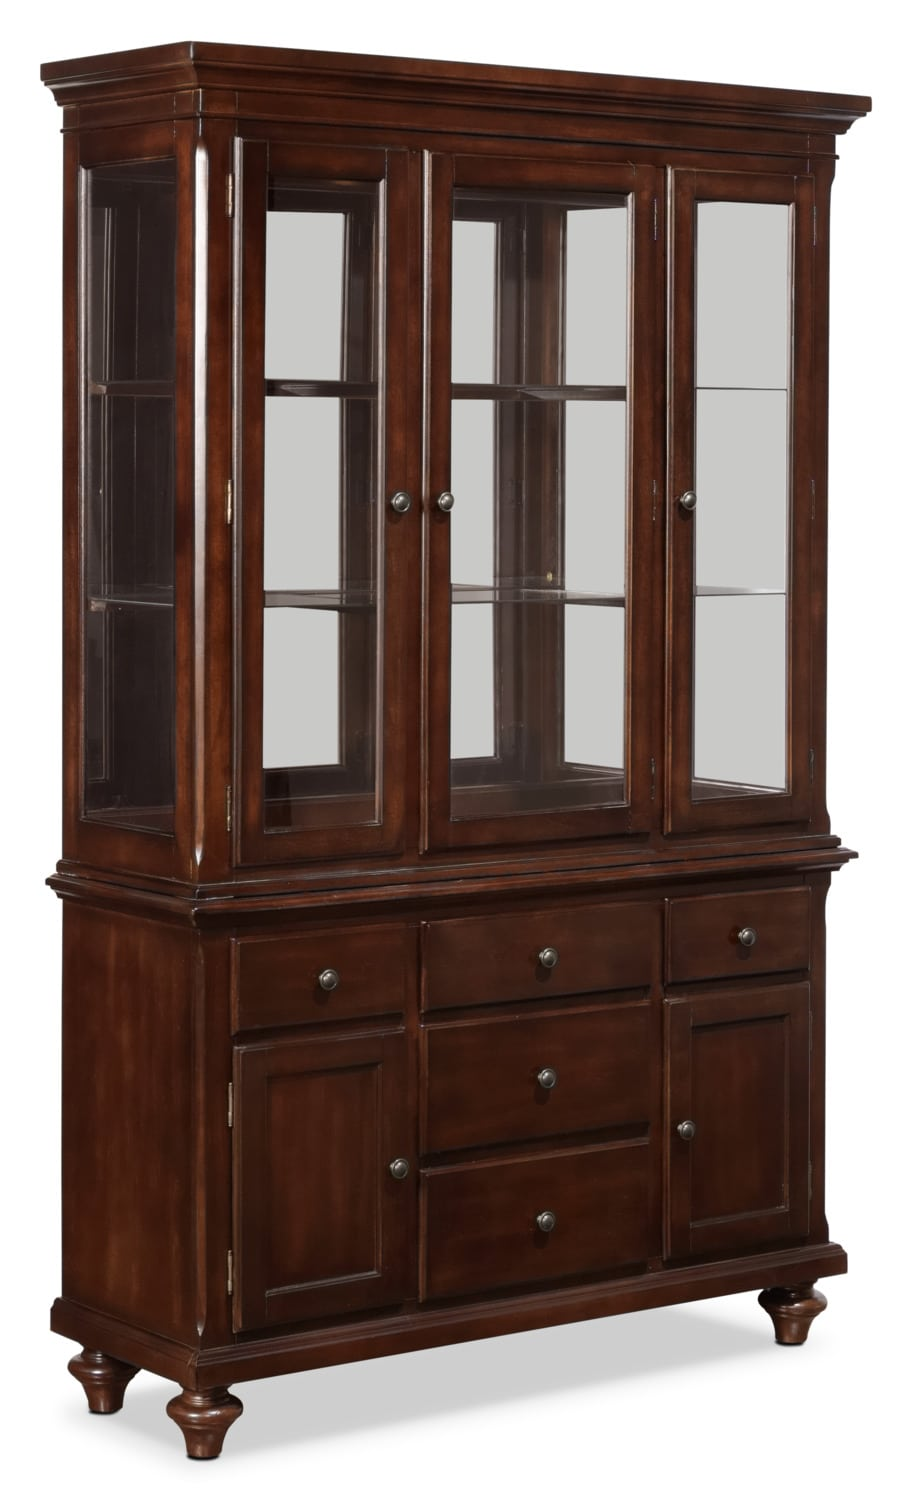 China cabinets leon 39 s for Dining room hutch canada